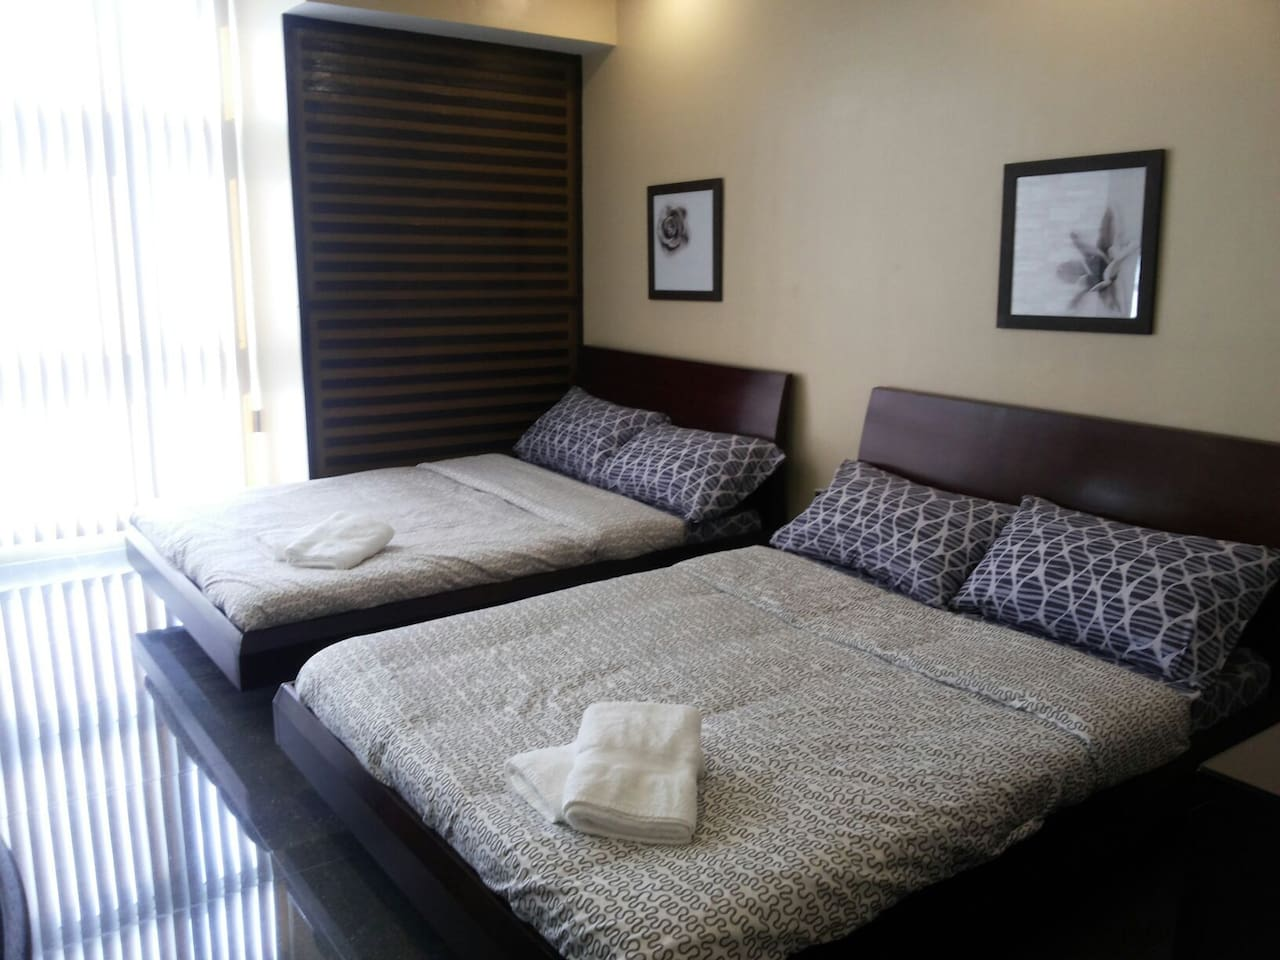 2 large double bed for 4 guests. 2HP airconditioner